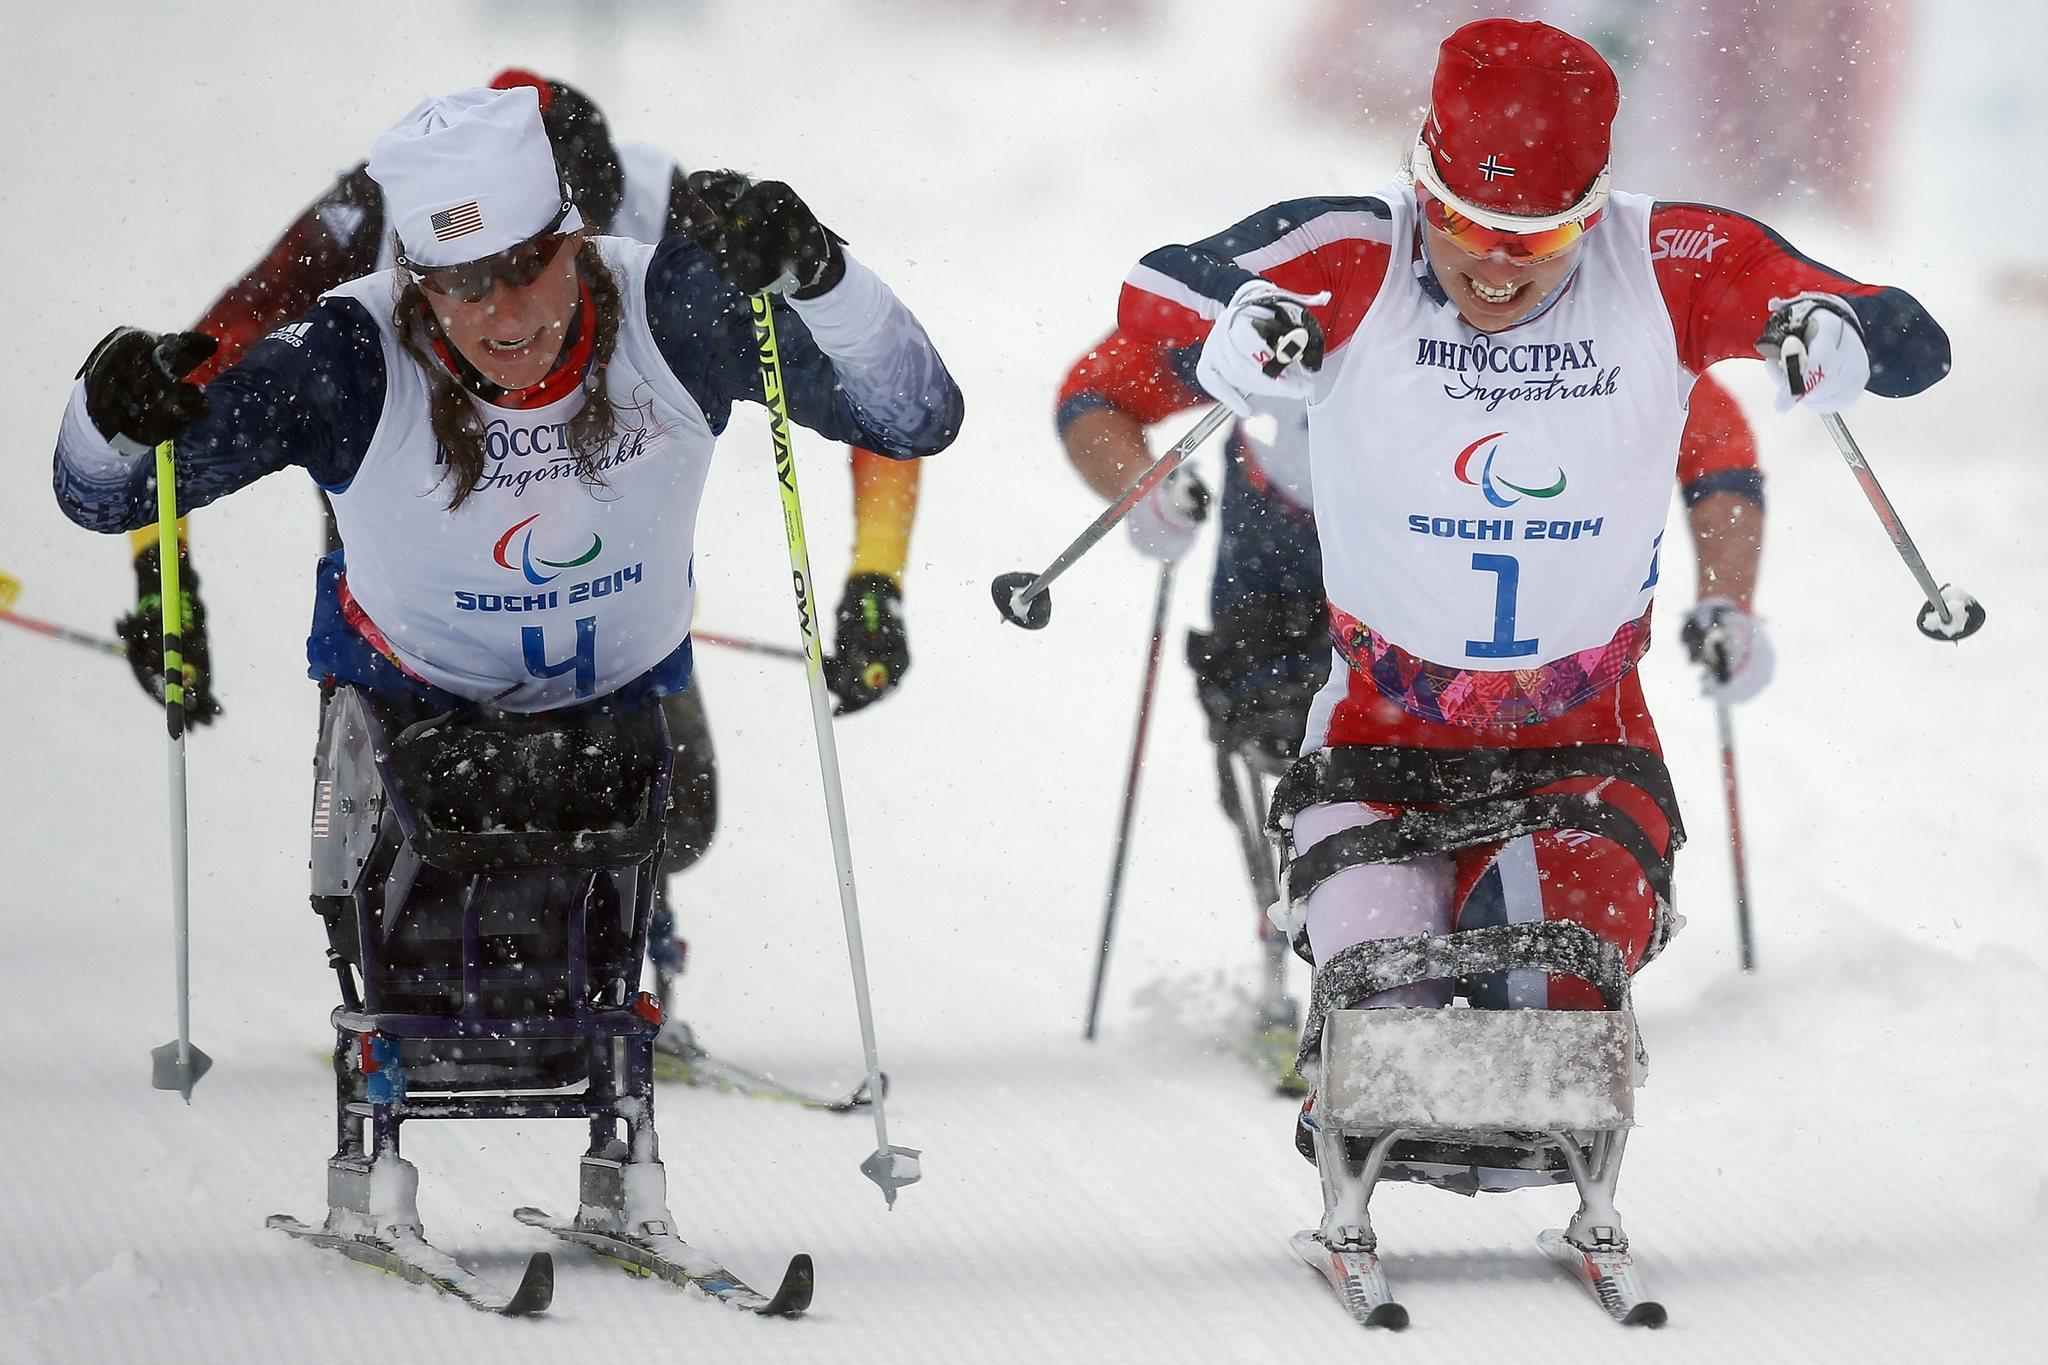 Tatiana McFadden (left) battles at finish of Wednesday's Paralympic cross-country sprint with Mariann Marthinsen of Norway. McFadden won the silver medal, .1 second behind Marthinsen.